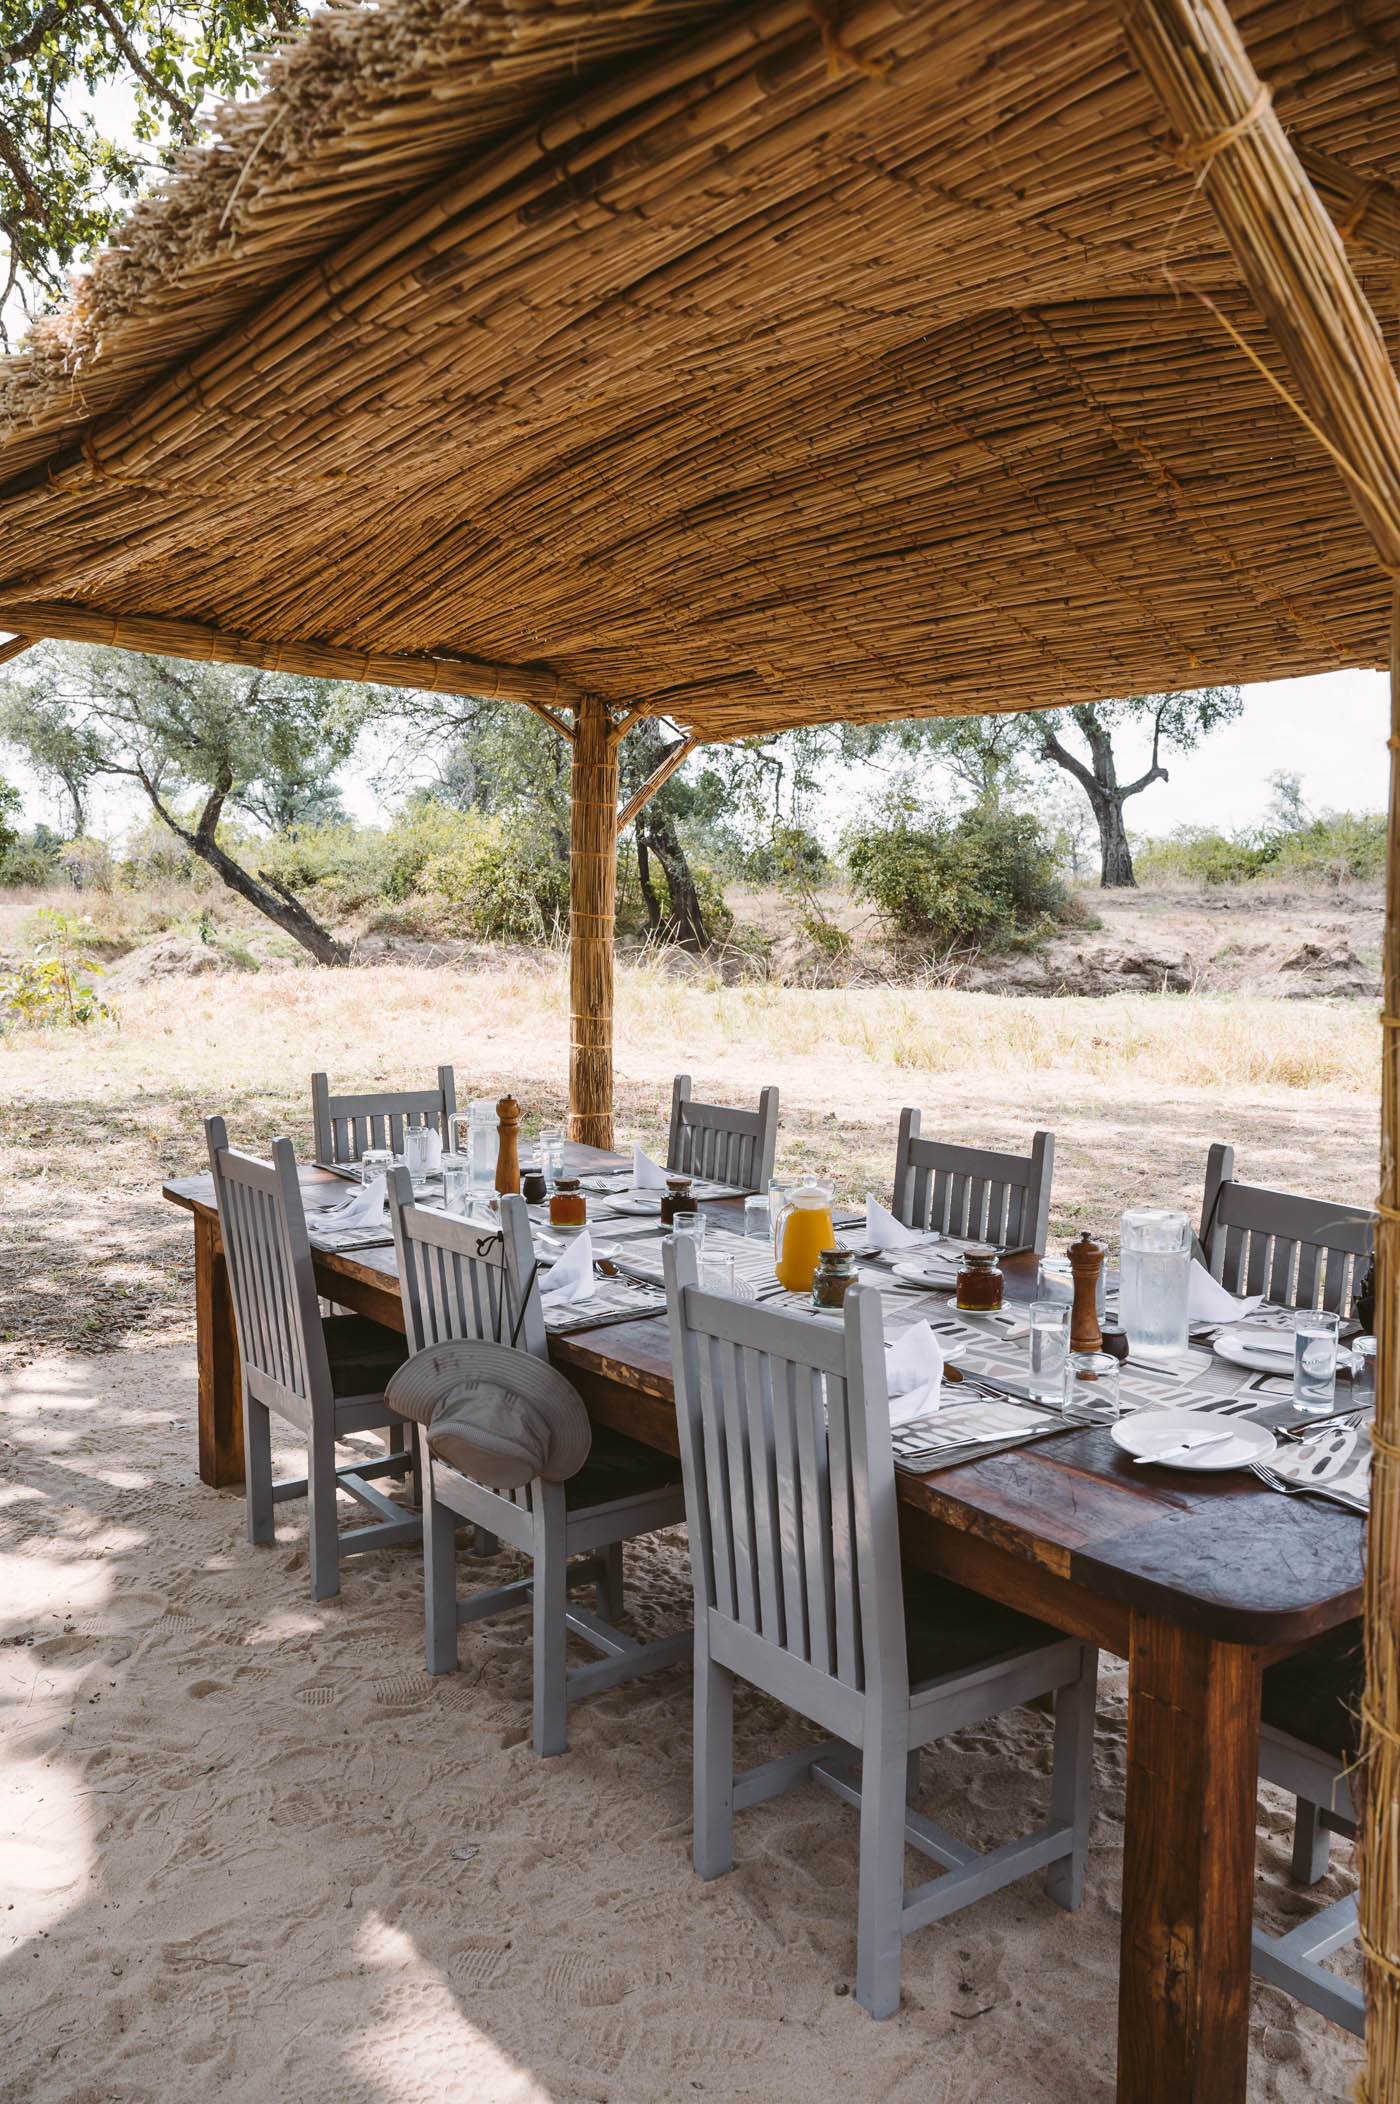 Mwamba camp by Shenton Safaris in South Luangwa National Park Zambia